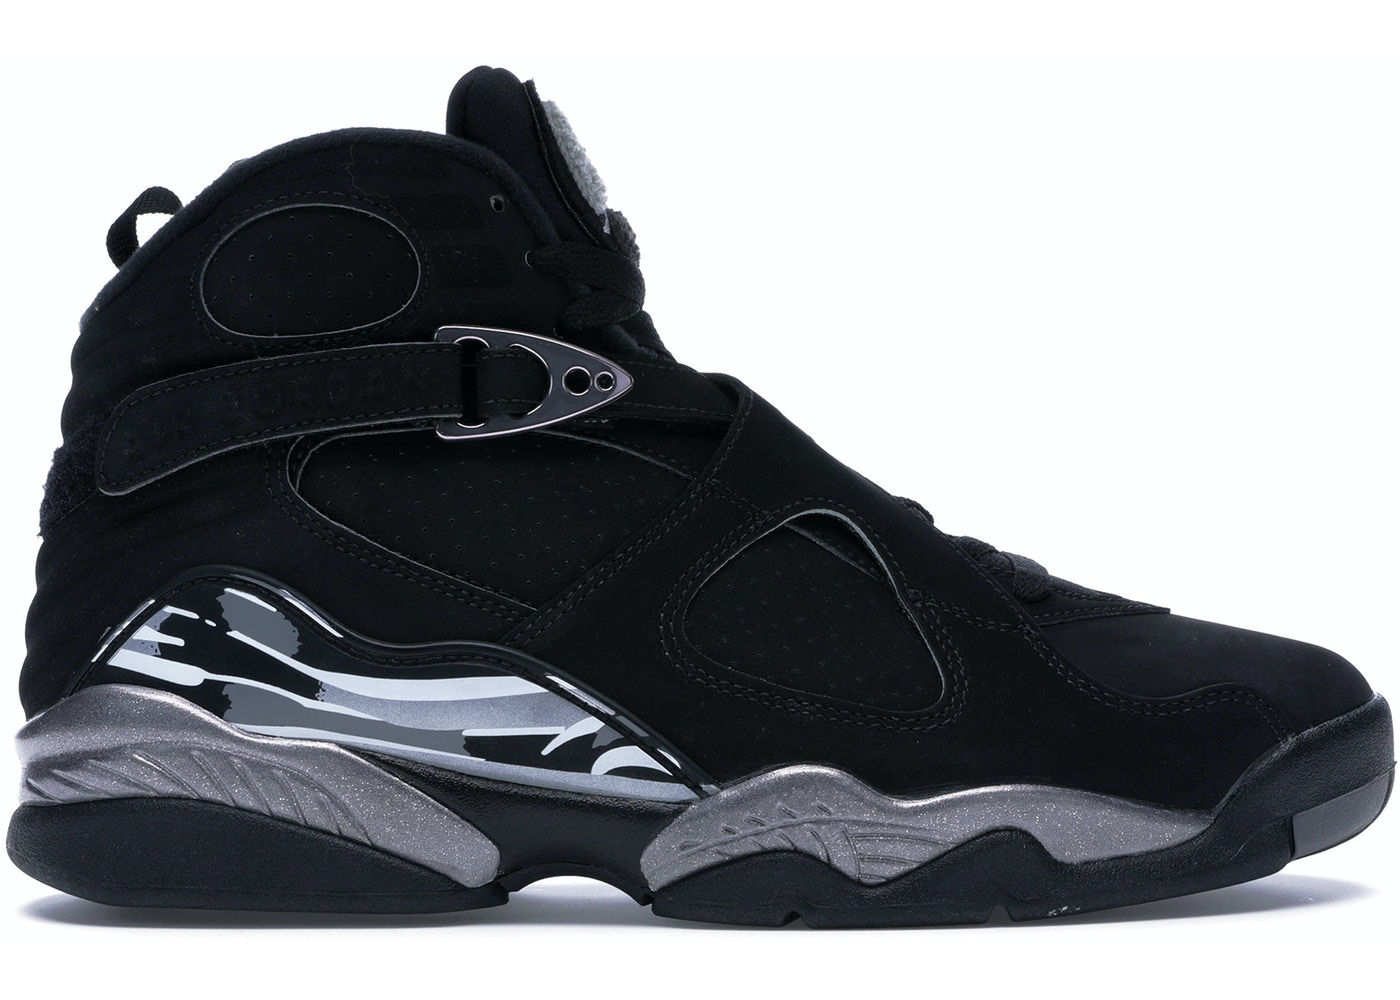 3865590bc07 Jordan 8 Retro Chrome (2015) - 305381-003